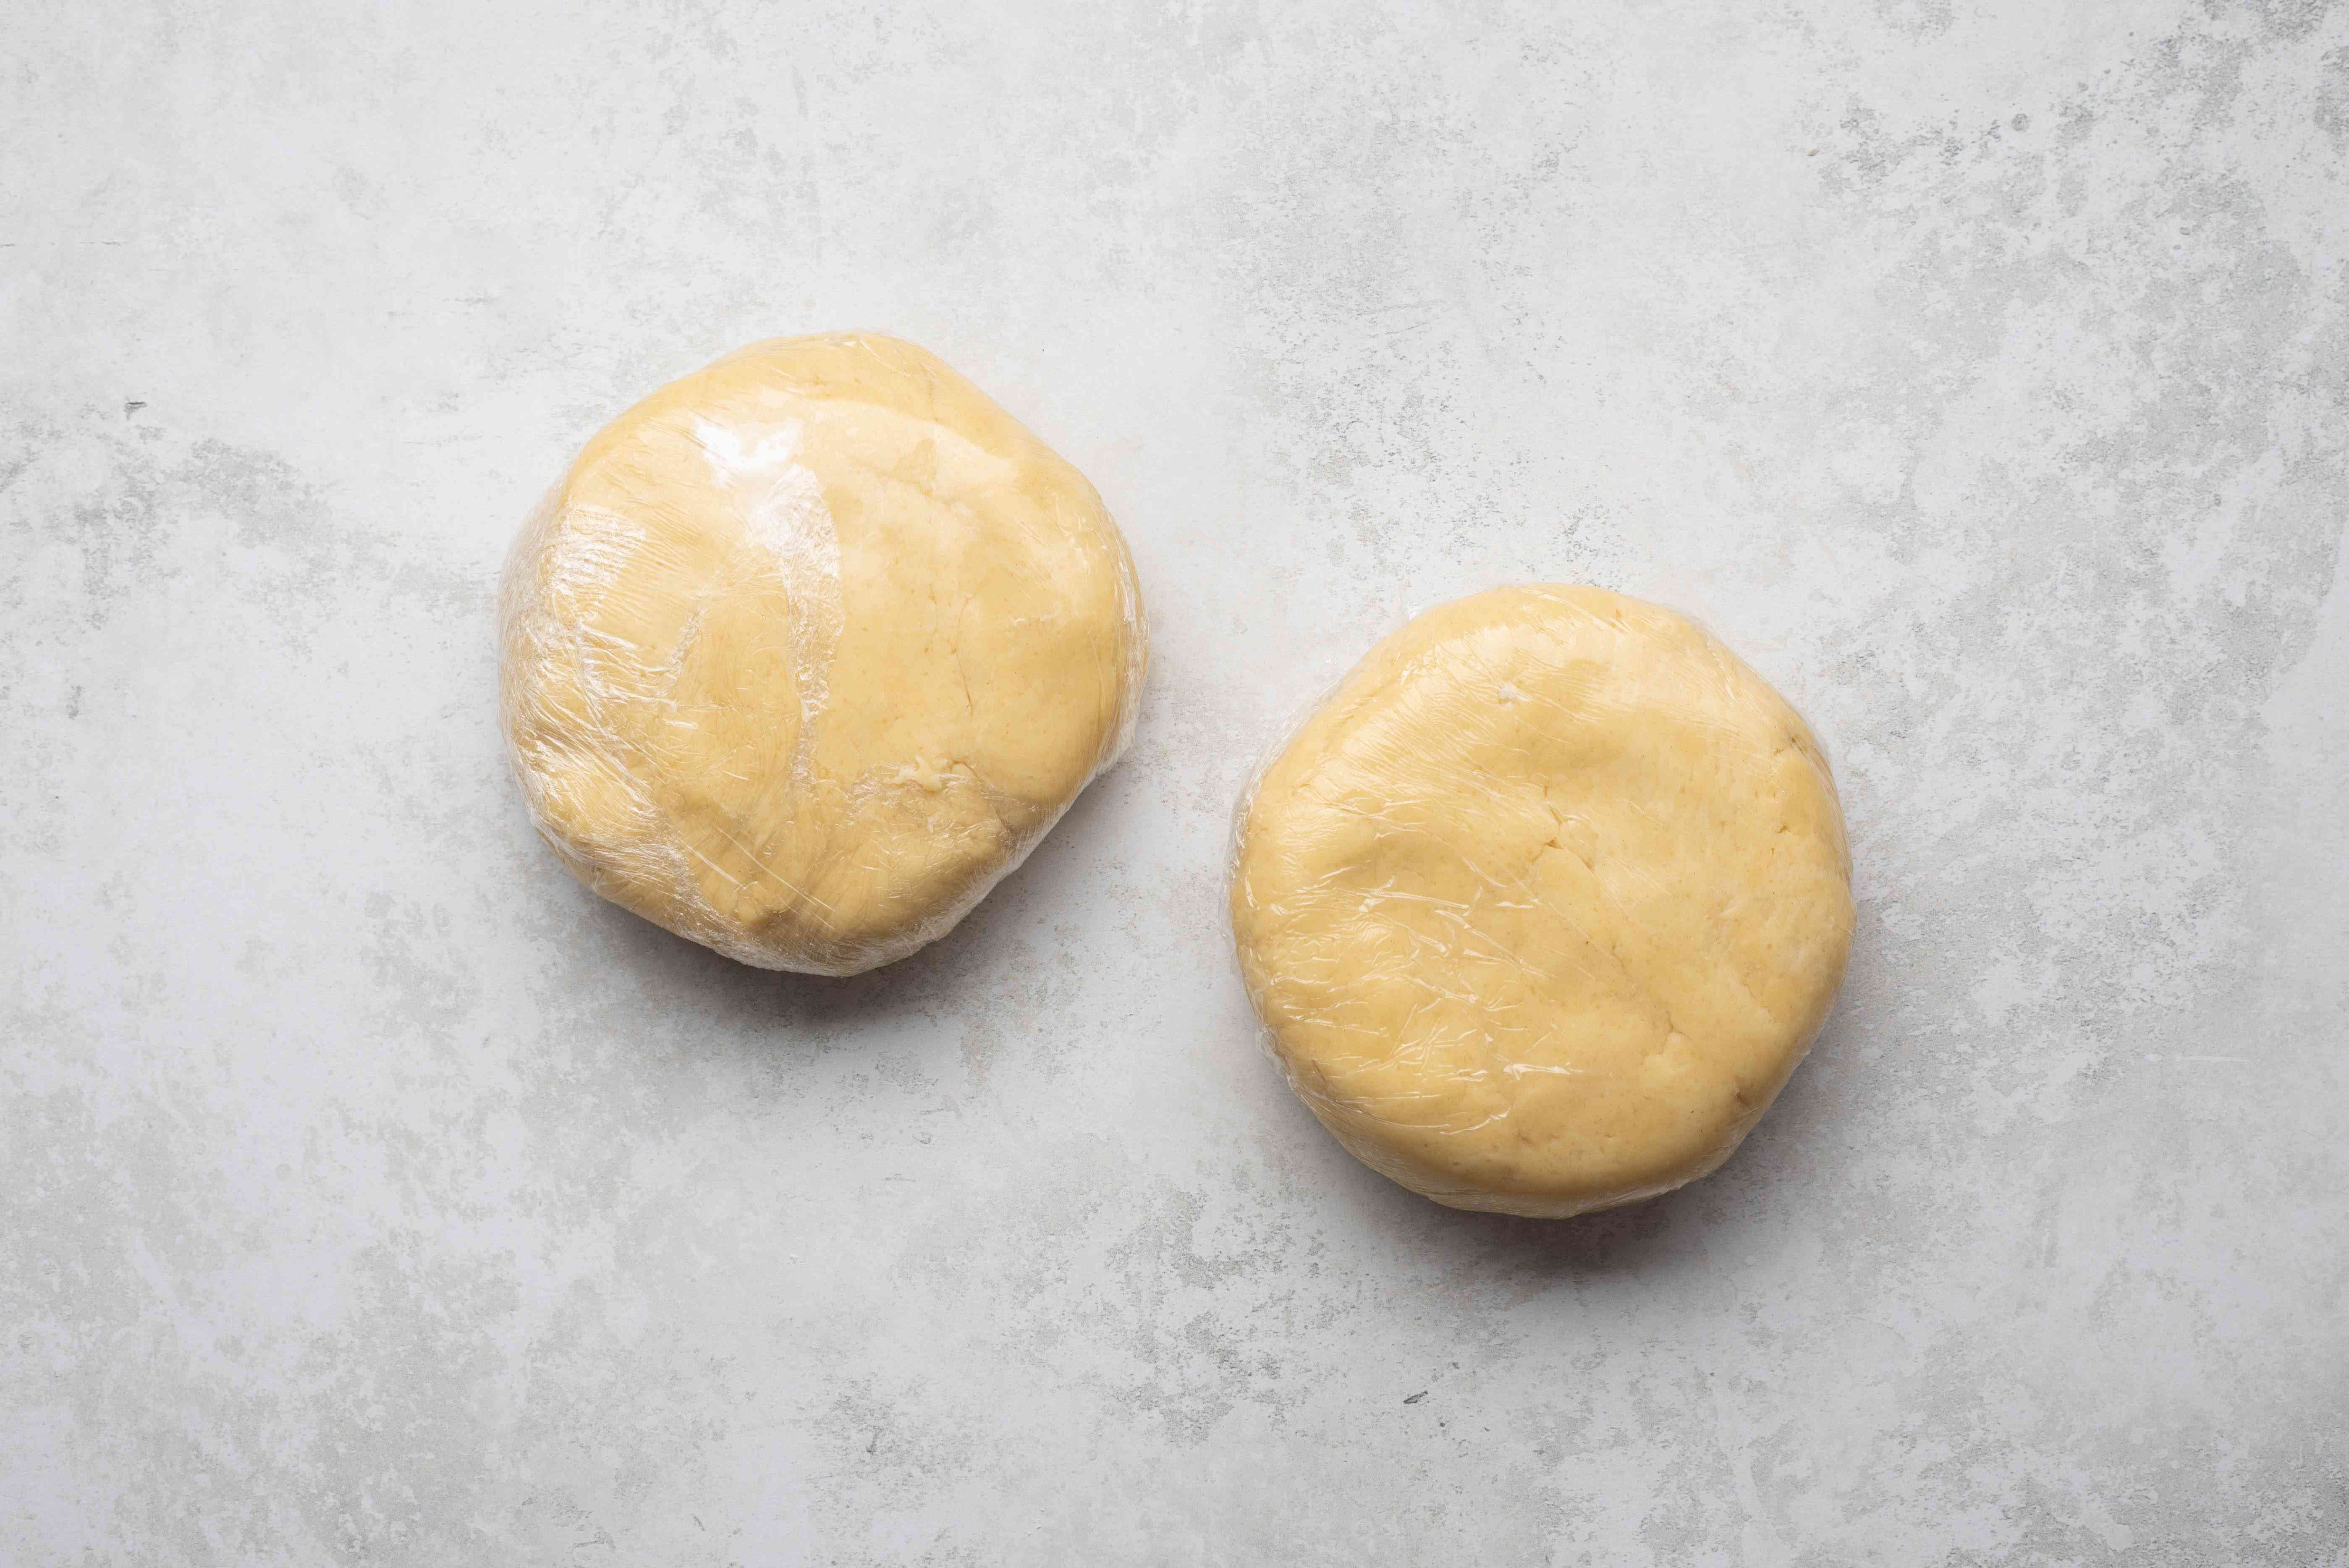 crust dough pieces wrapped in plastic wrap